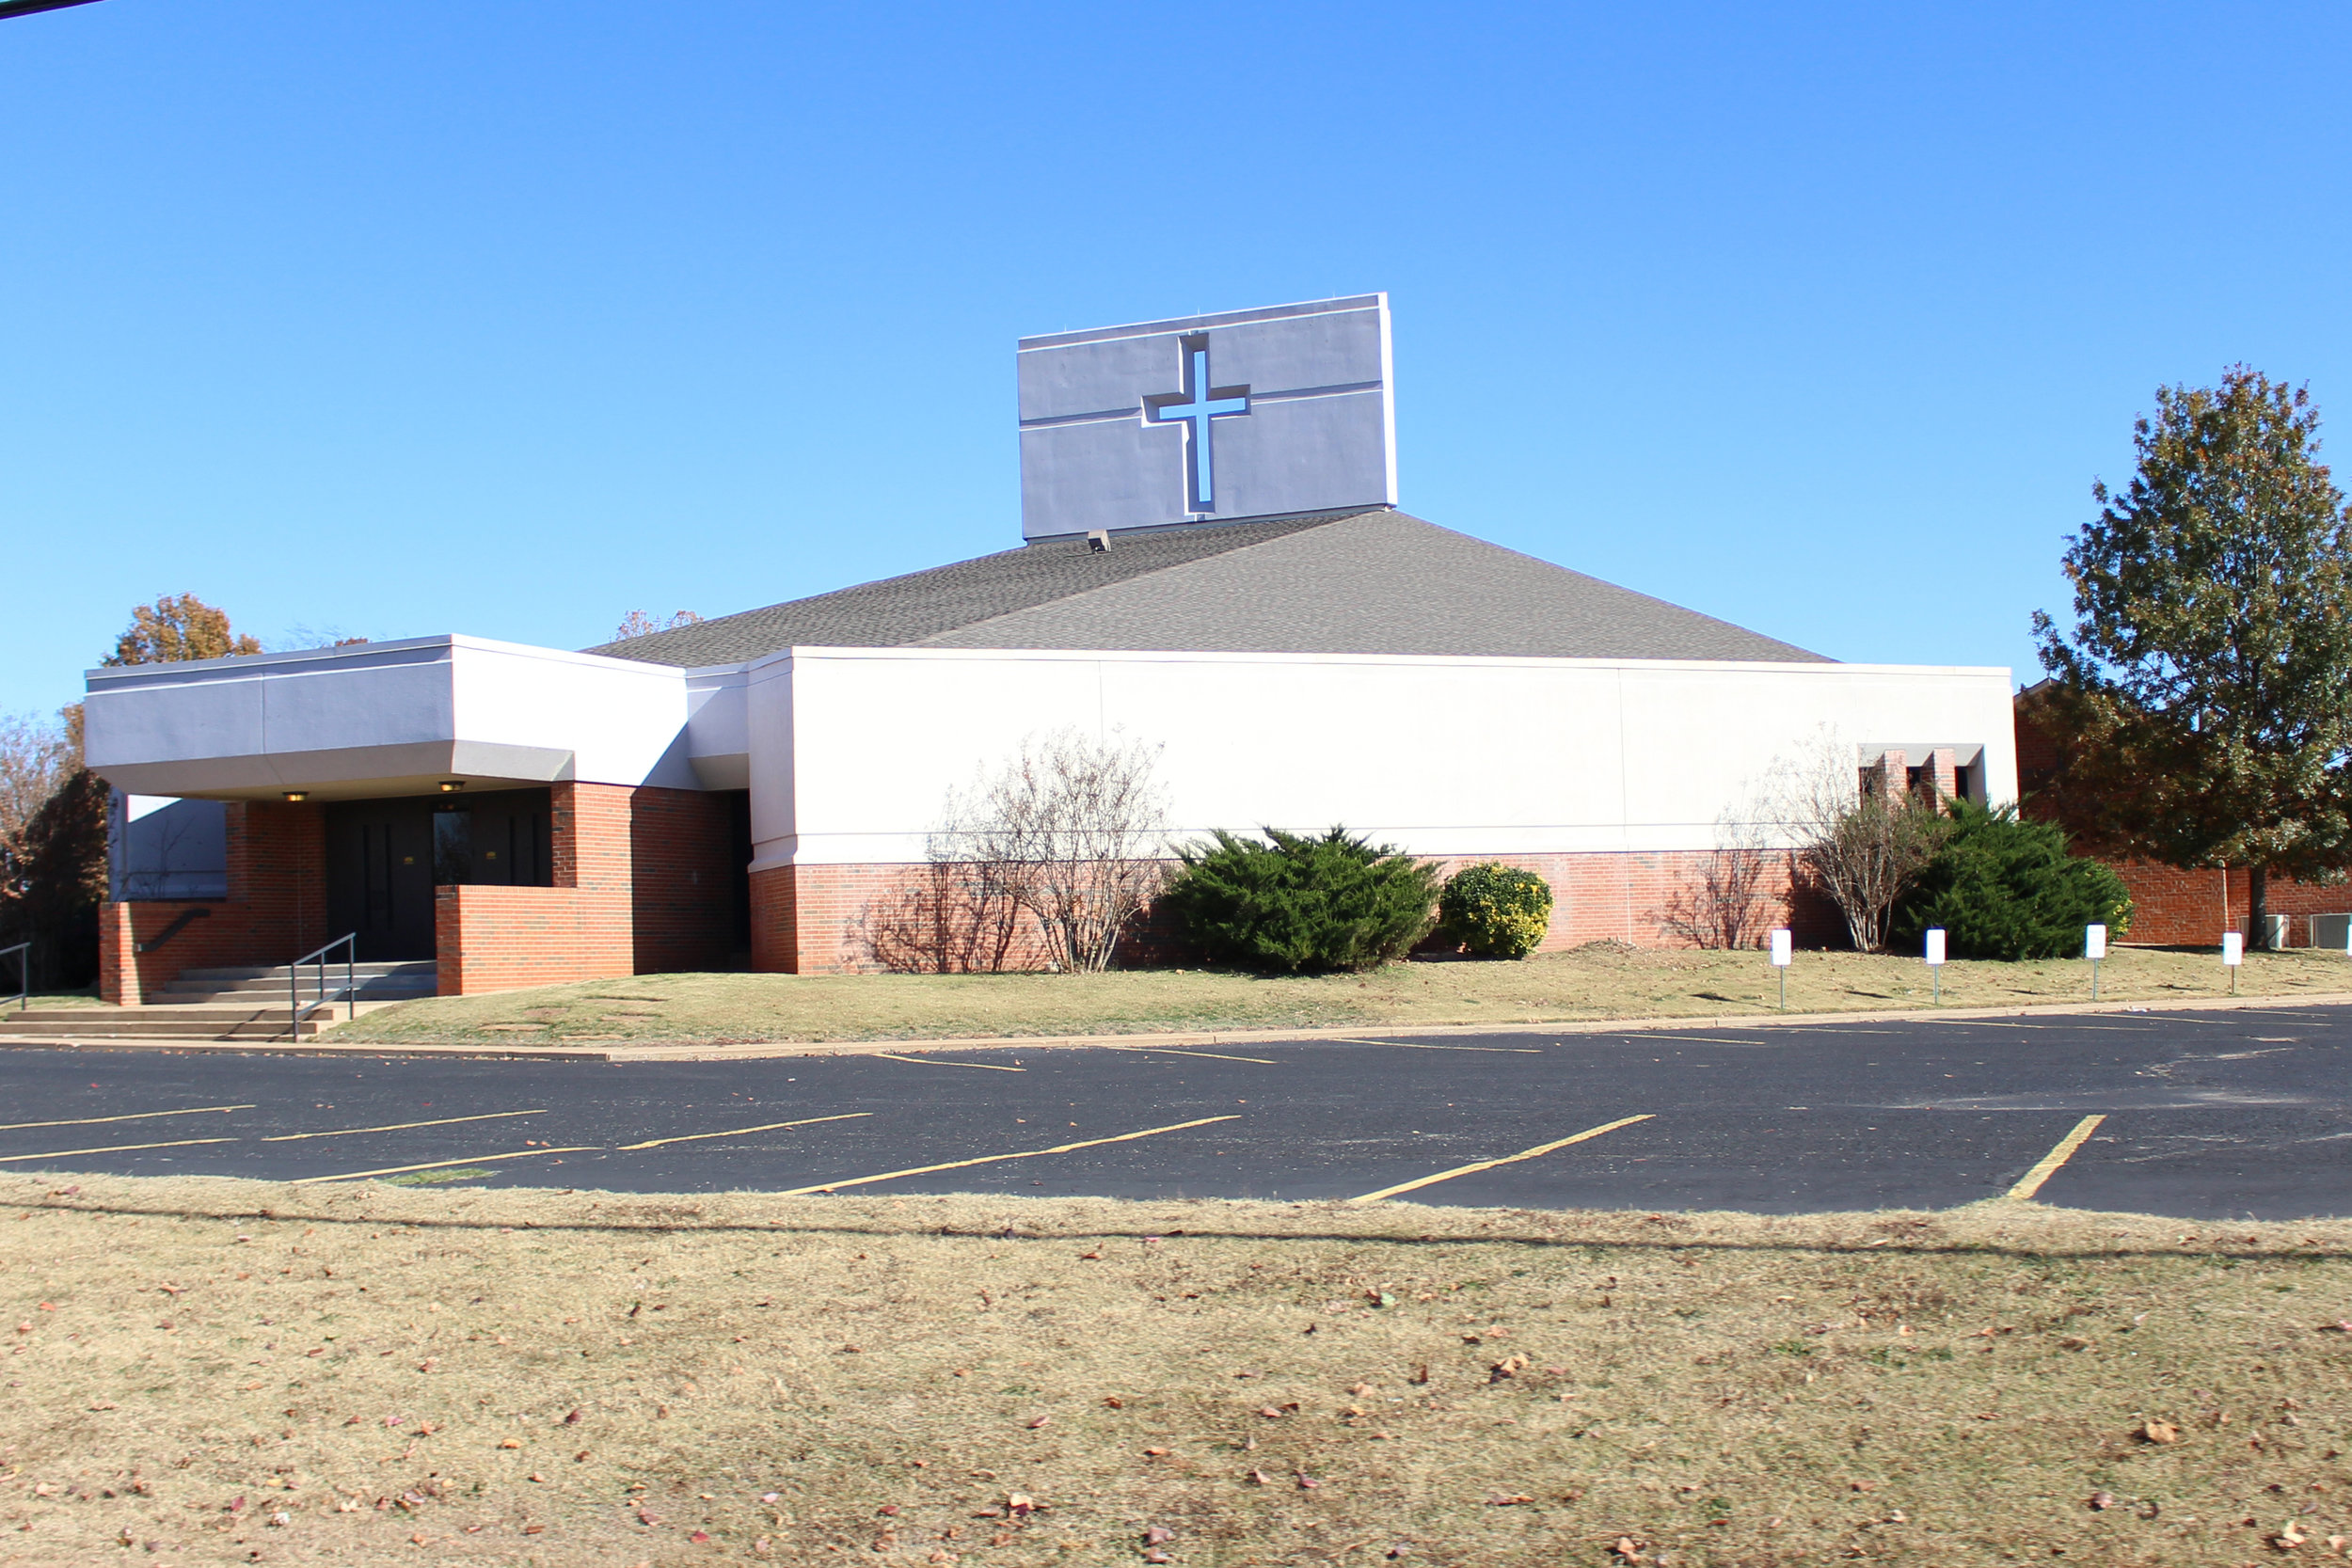 angus church - prattville 4401 south 129th west avenue